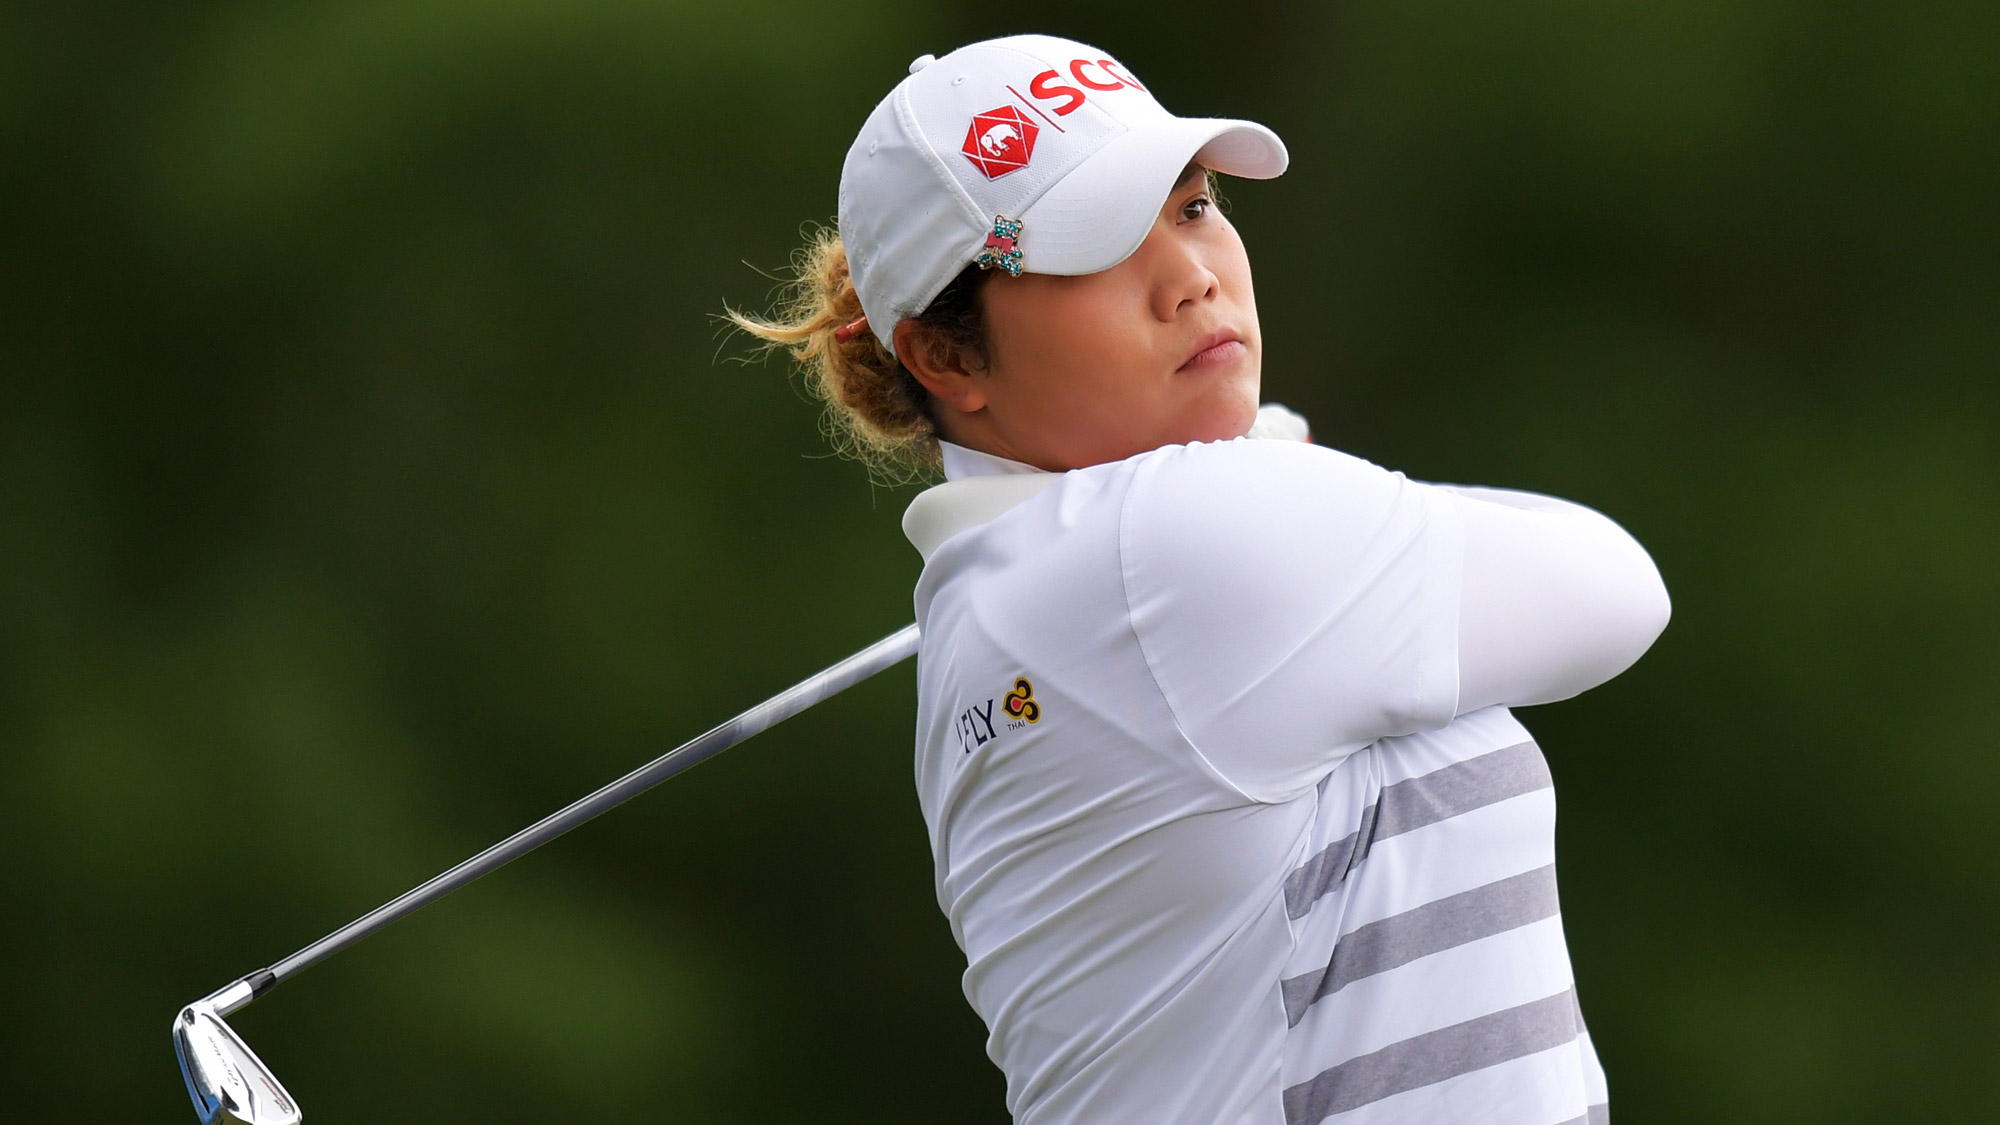 Ariya Jutanugarn in Round Two of the Walmart NW Arkansas Championship